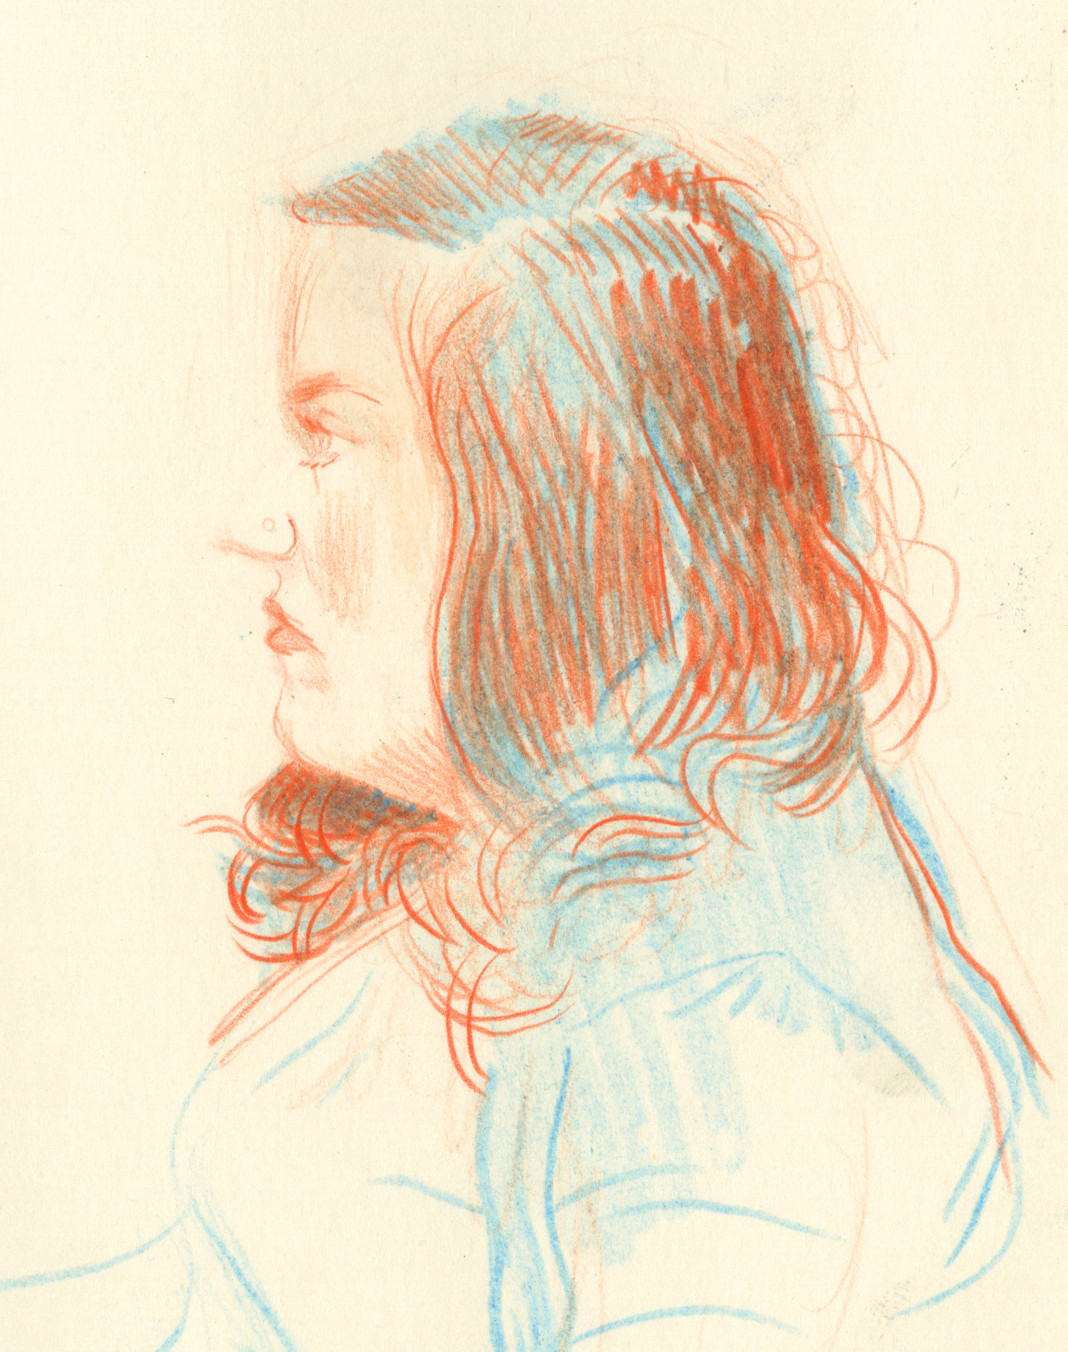 Anne Cuddy, pencil, 4x6